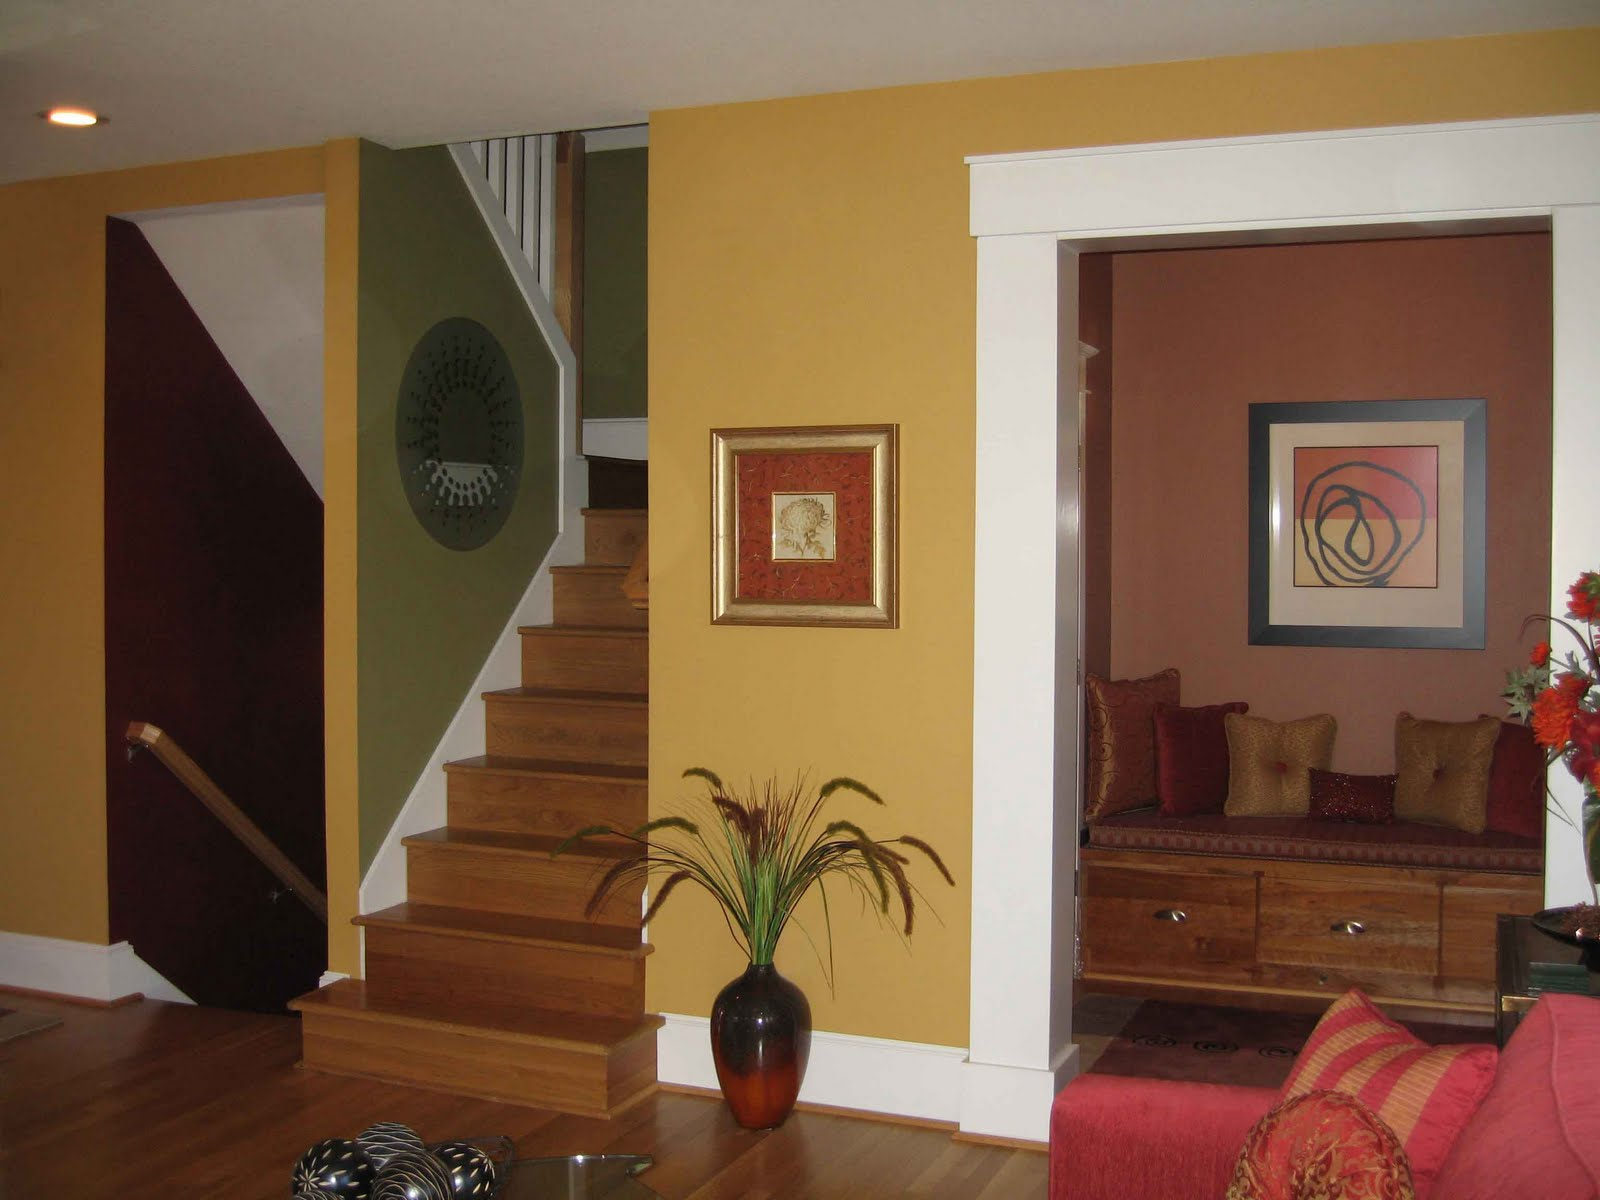 Interior spaces interior paint color specialist in for What is best paint for interior walls